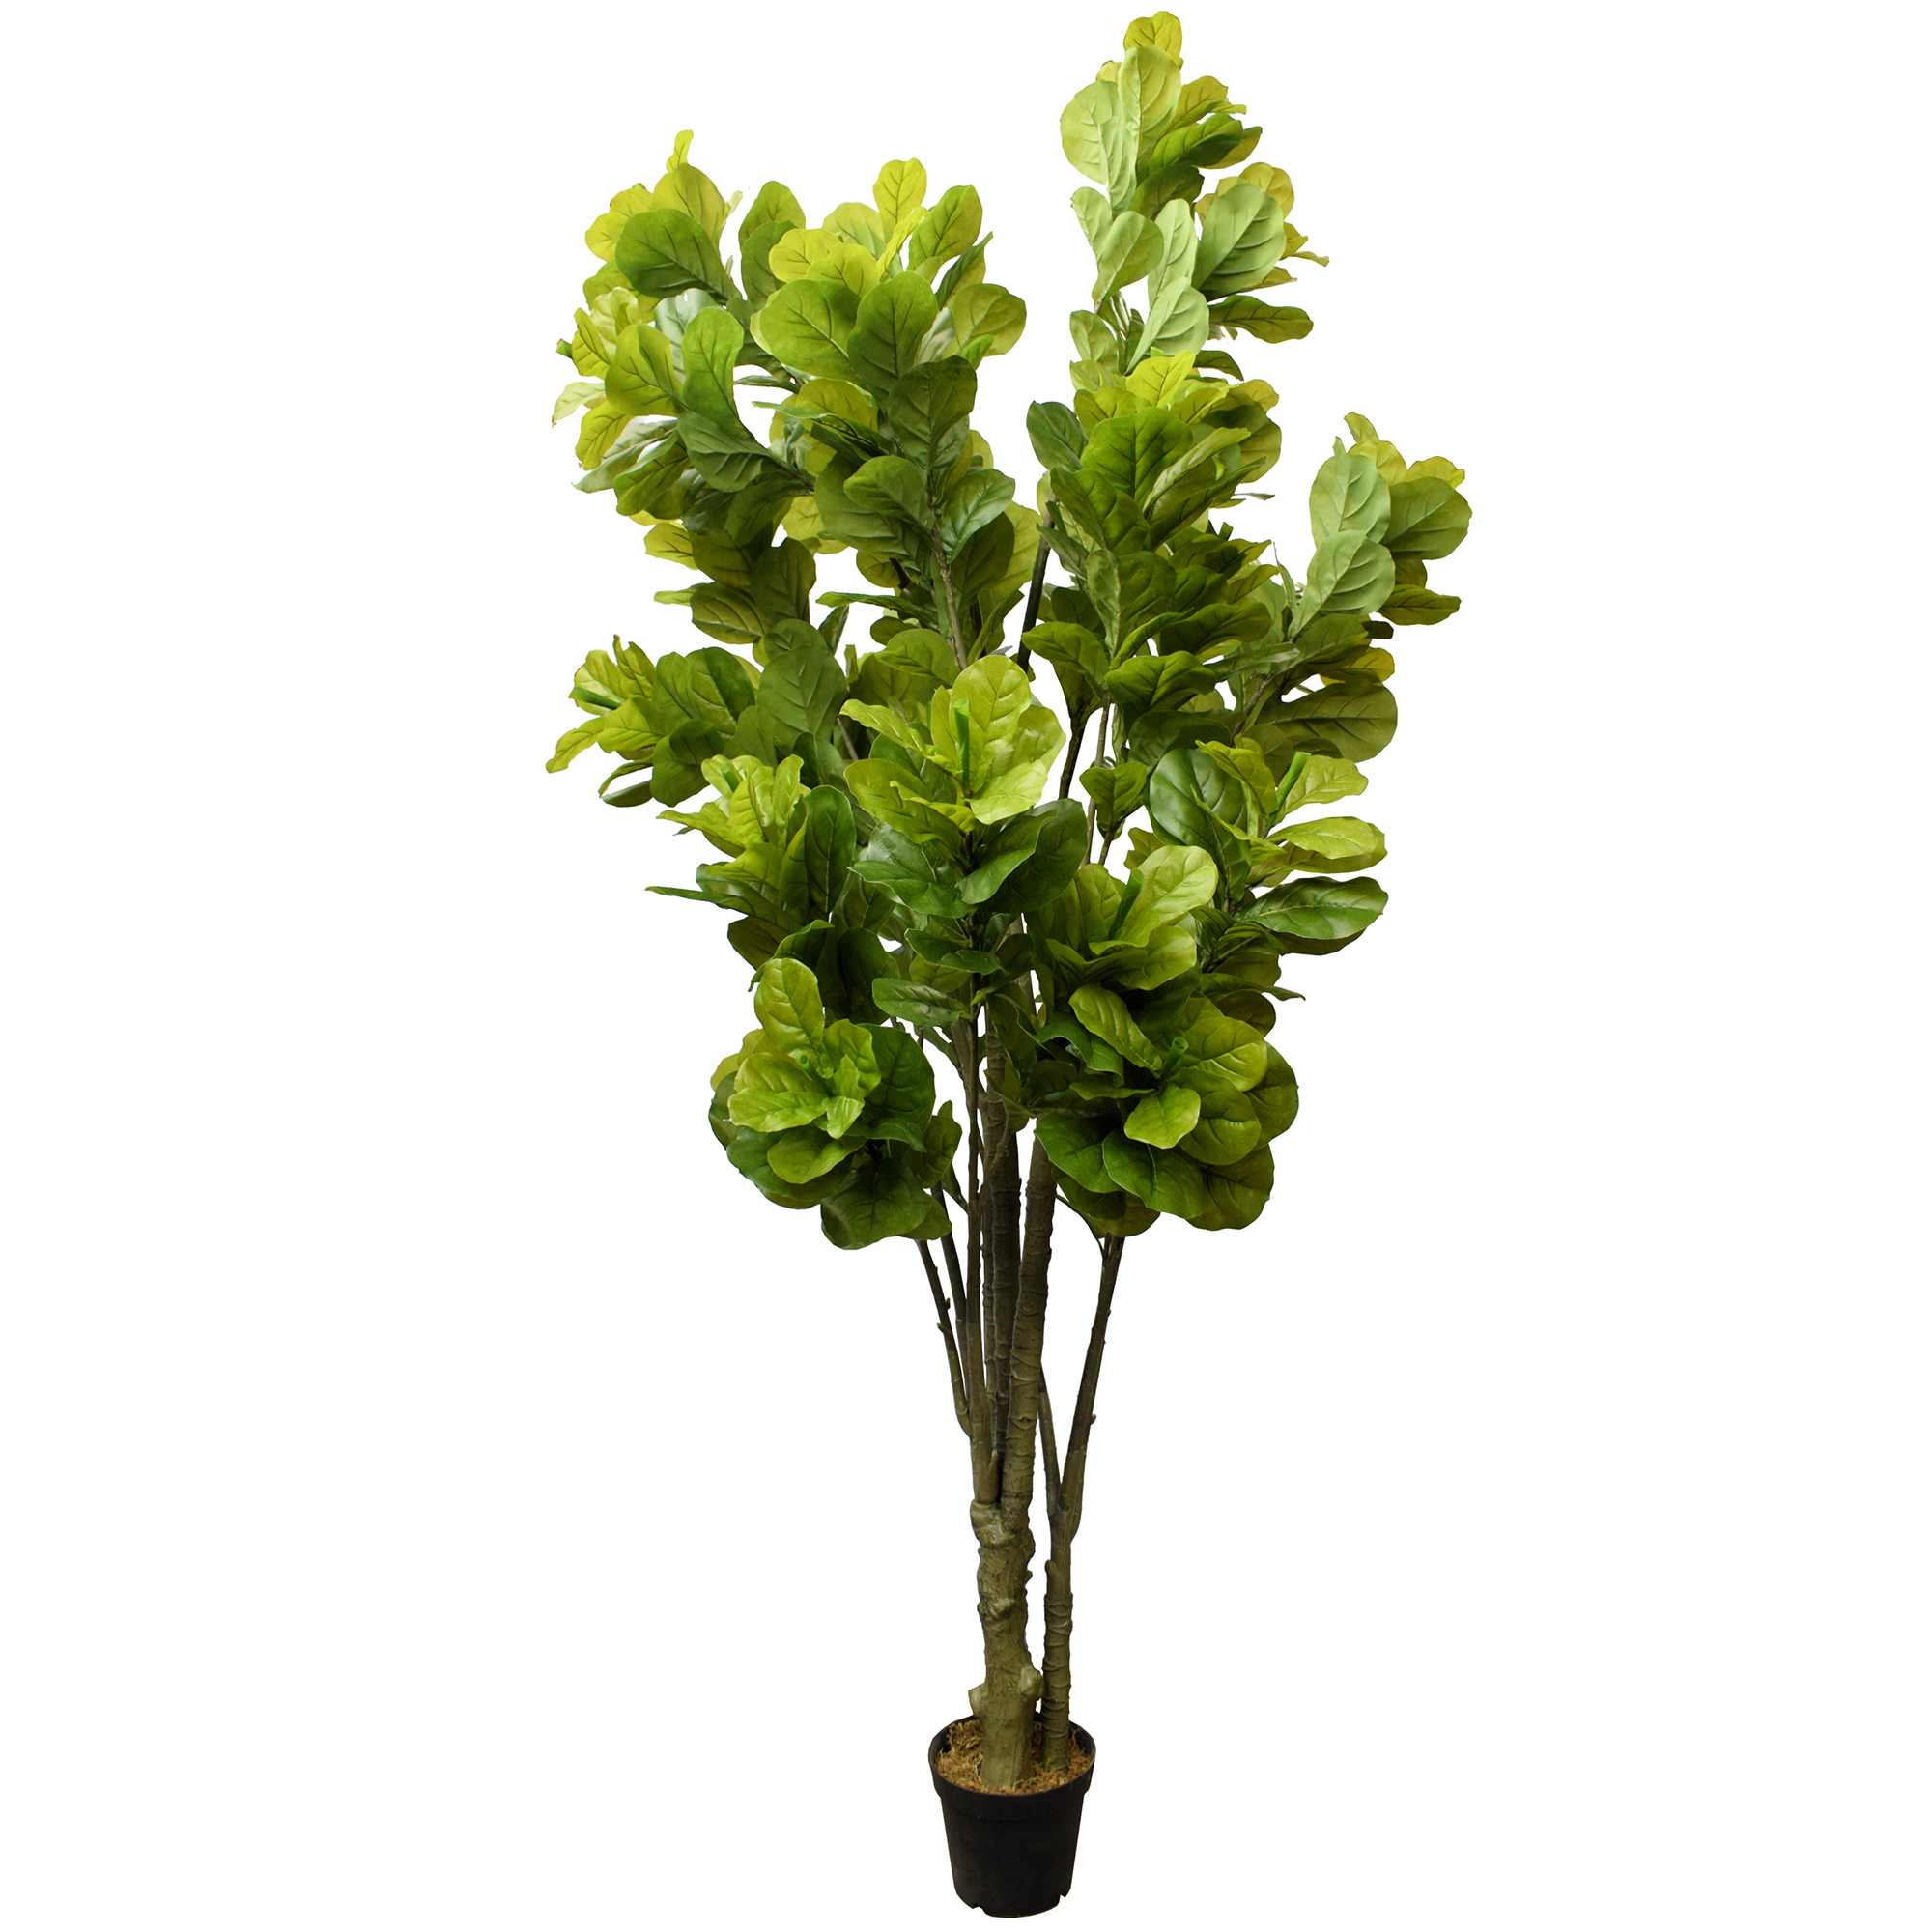 9 5 Quot Real Touch Fiddle Leaf Fig Silk Tree With 3 Trunks